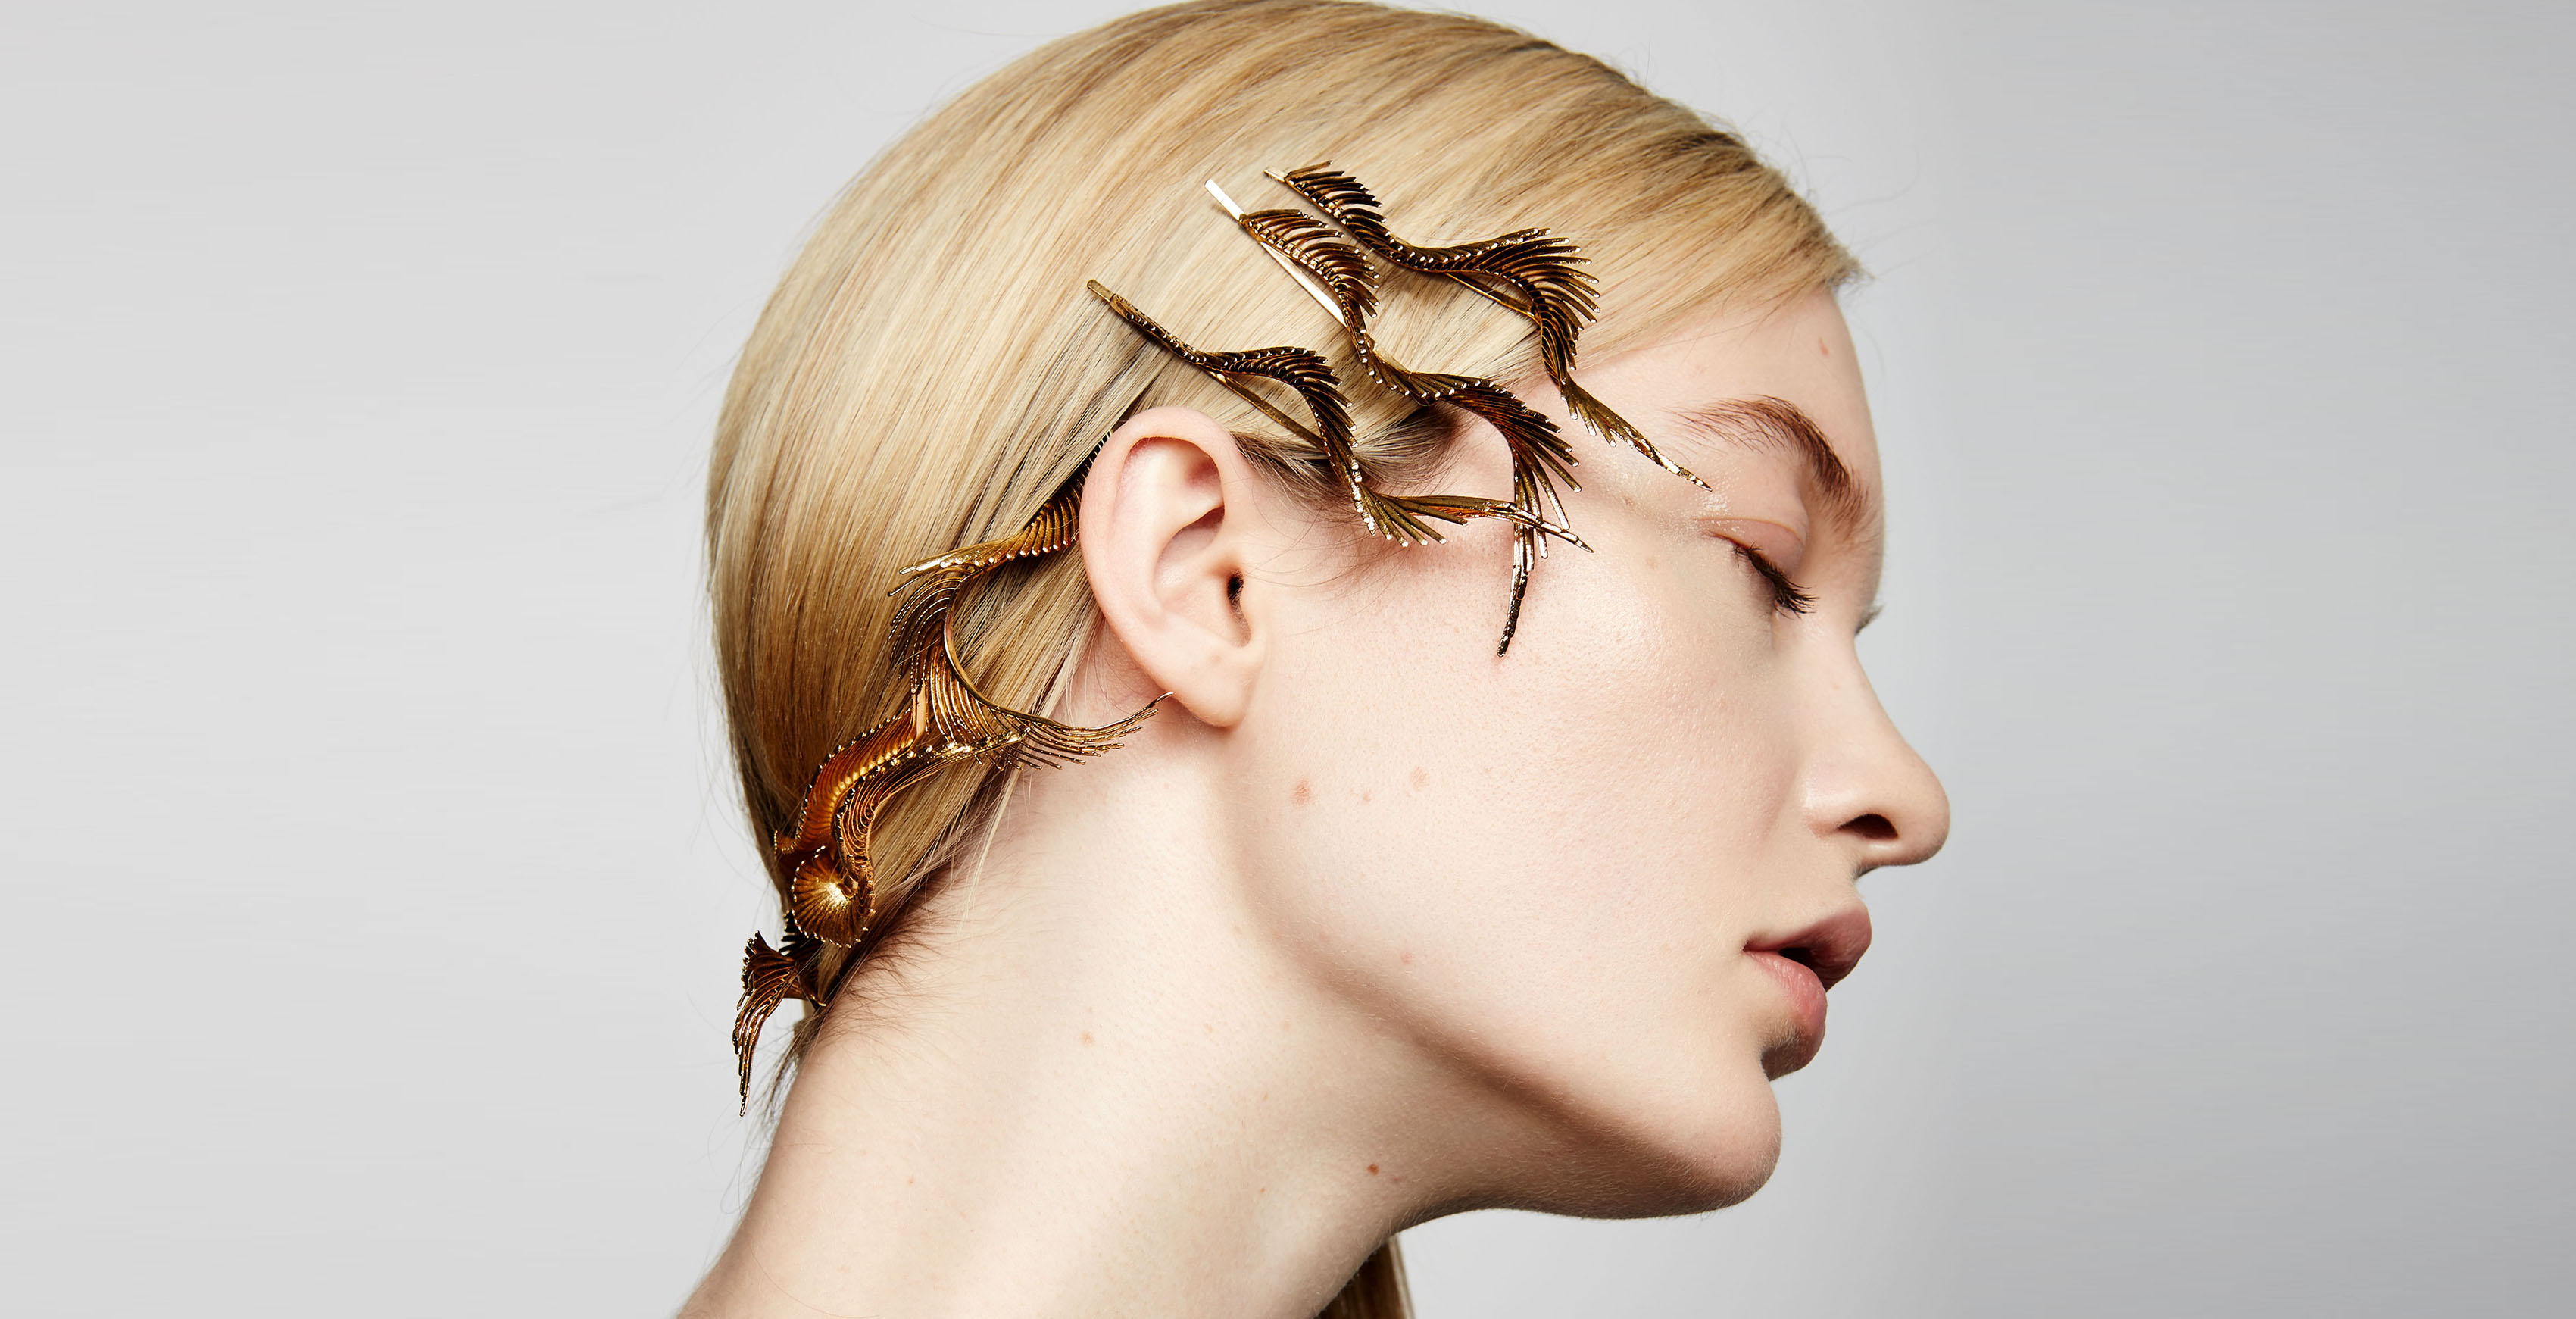 Adir Abergel and Lelet NY collaborate on a 15-item hair accessory range.